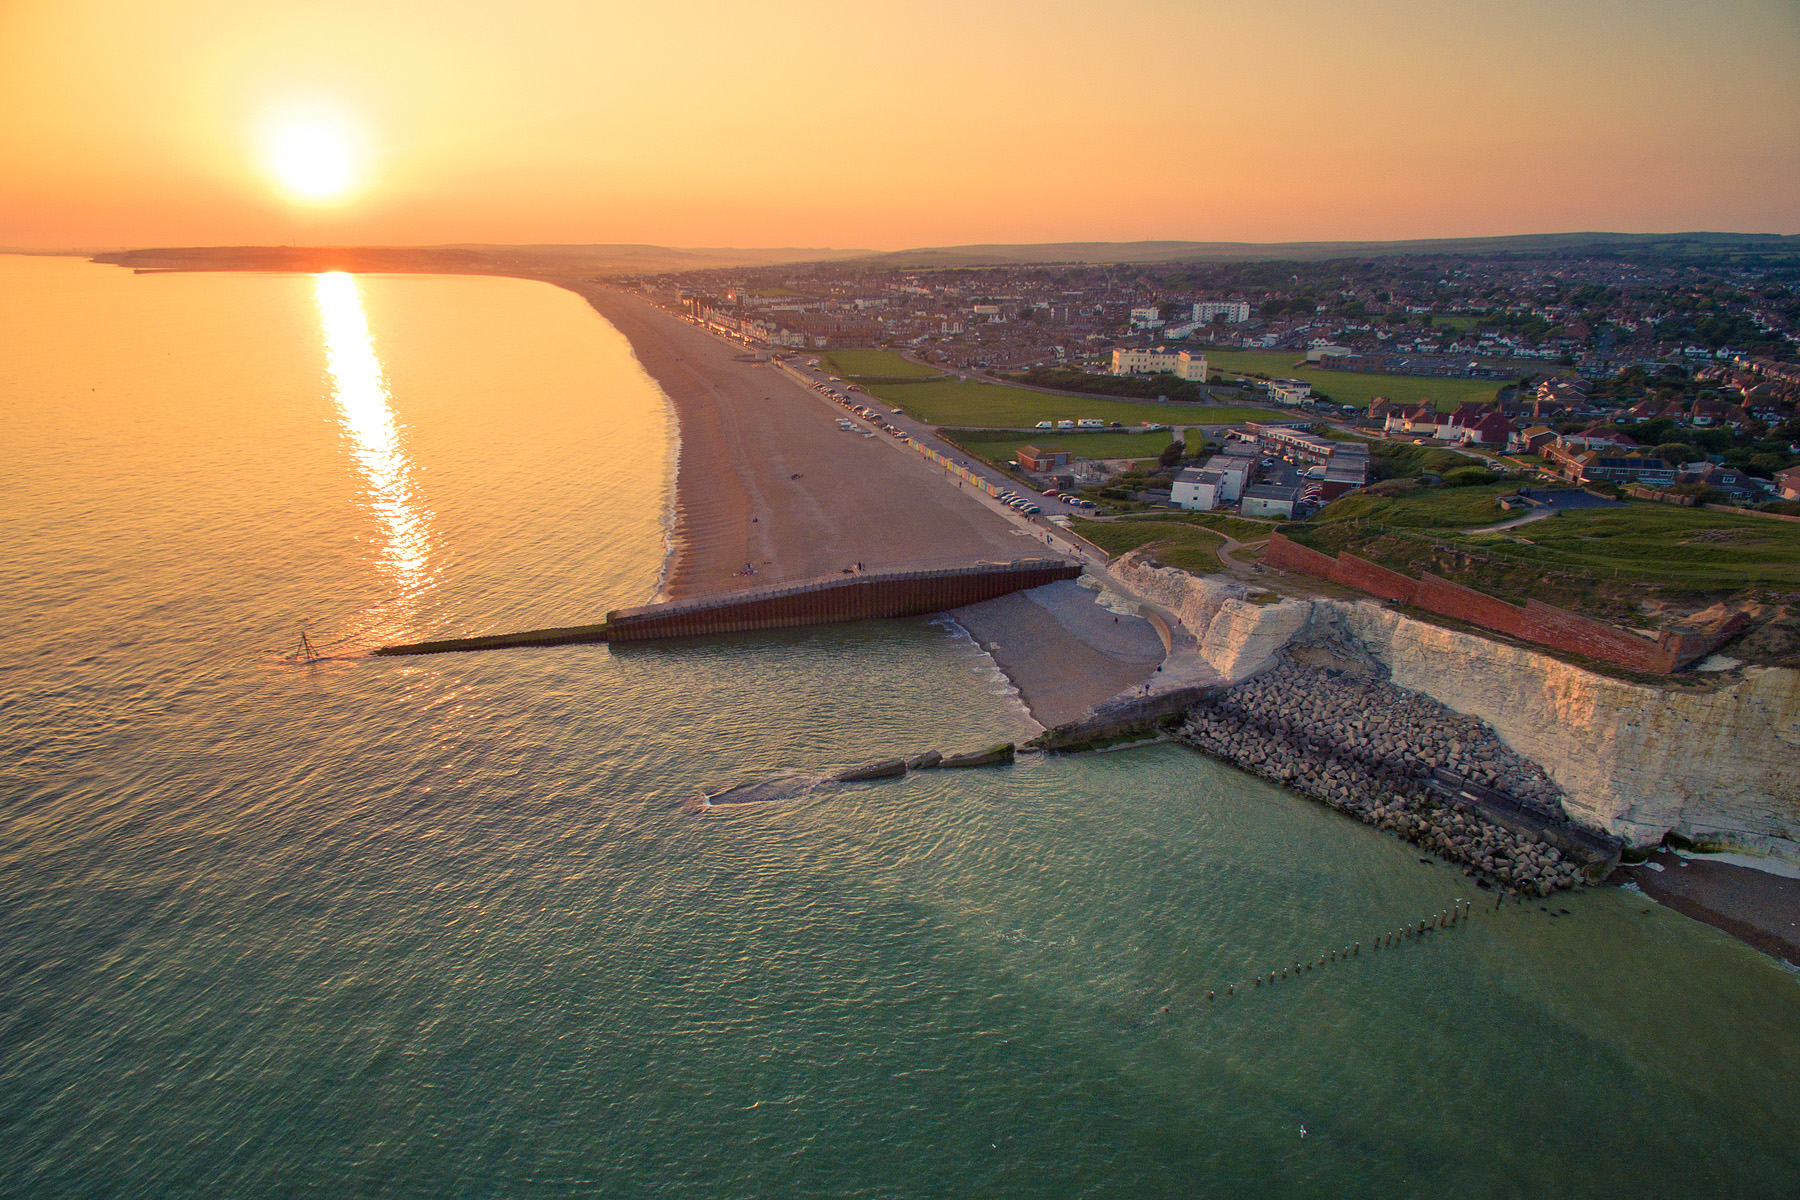 Sunset over Seaford, East Sussex